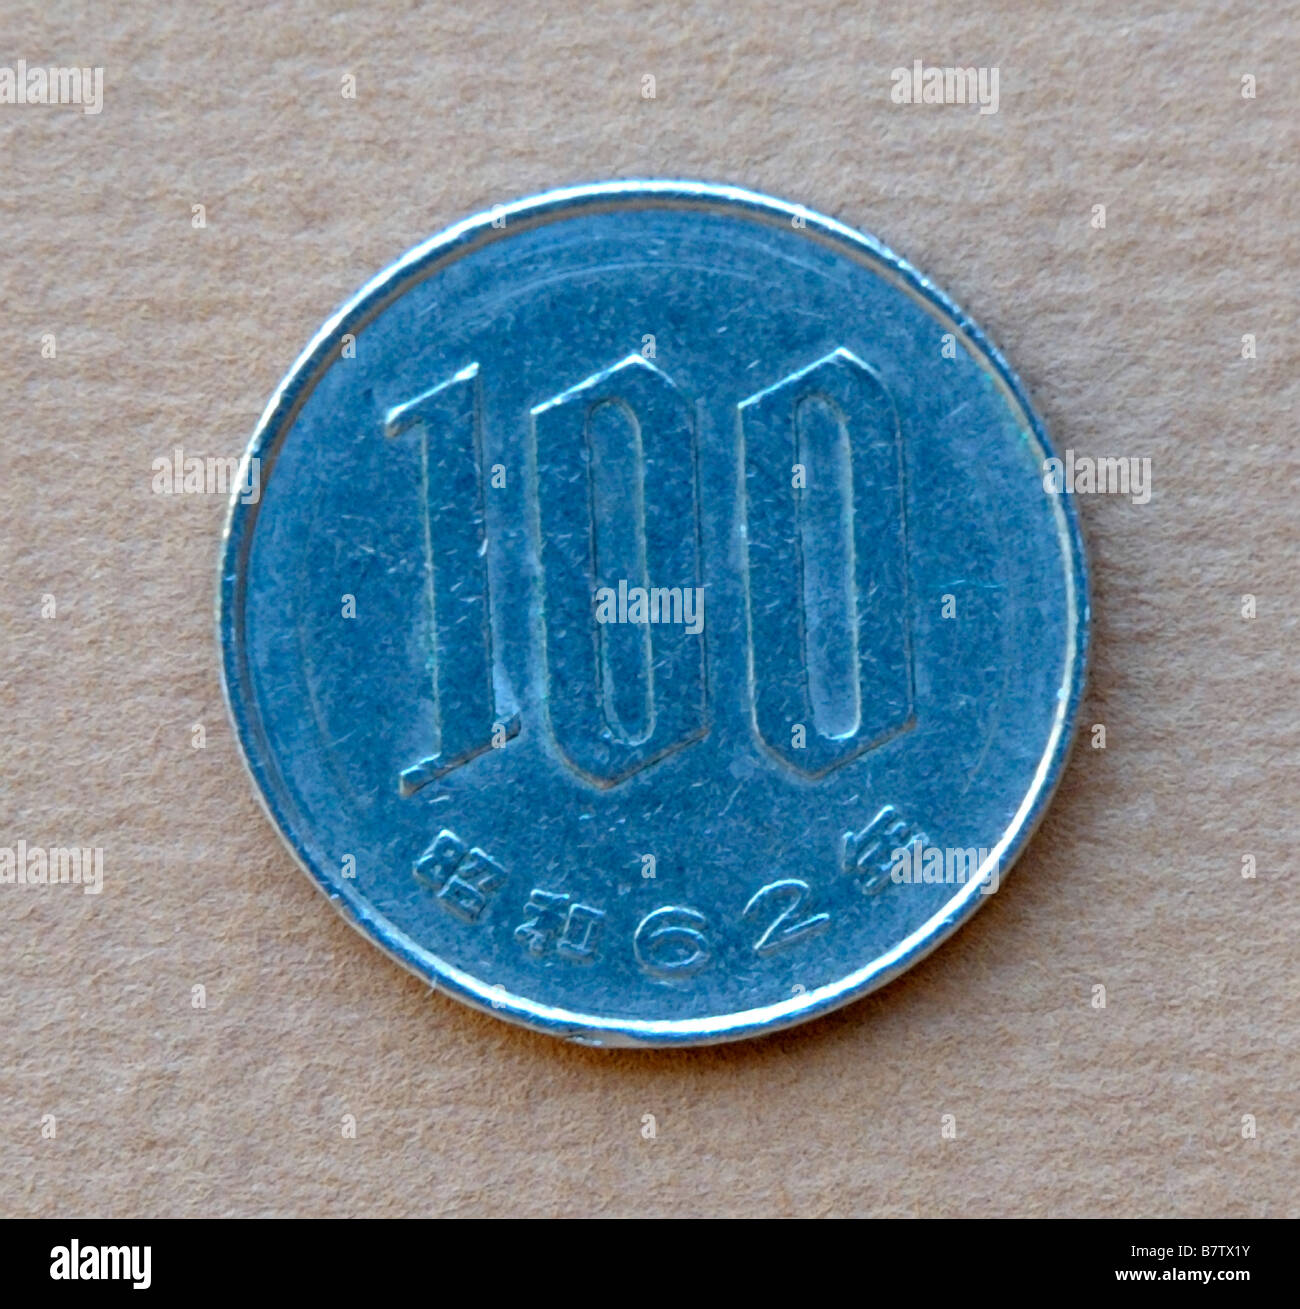 China 100 One Hundred Fen Coin Stock Photo